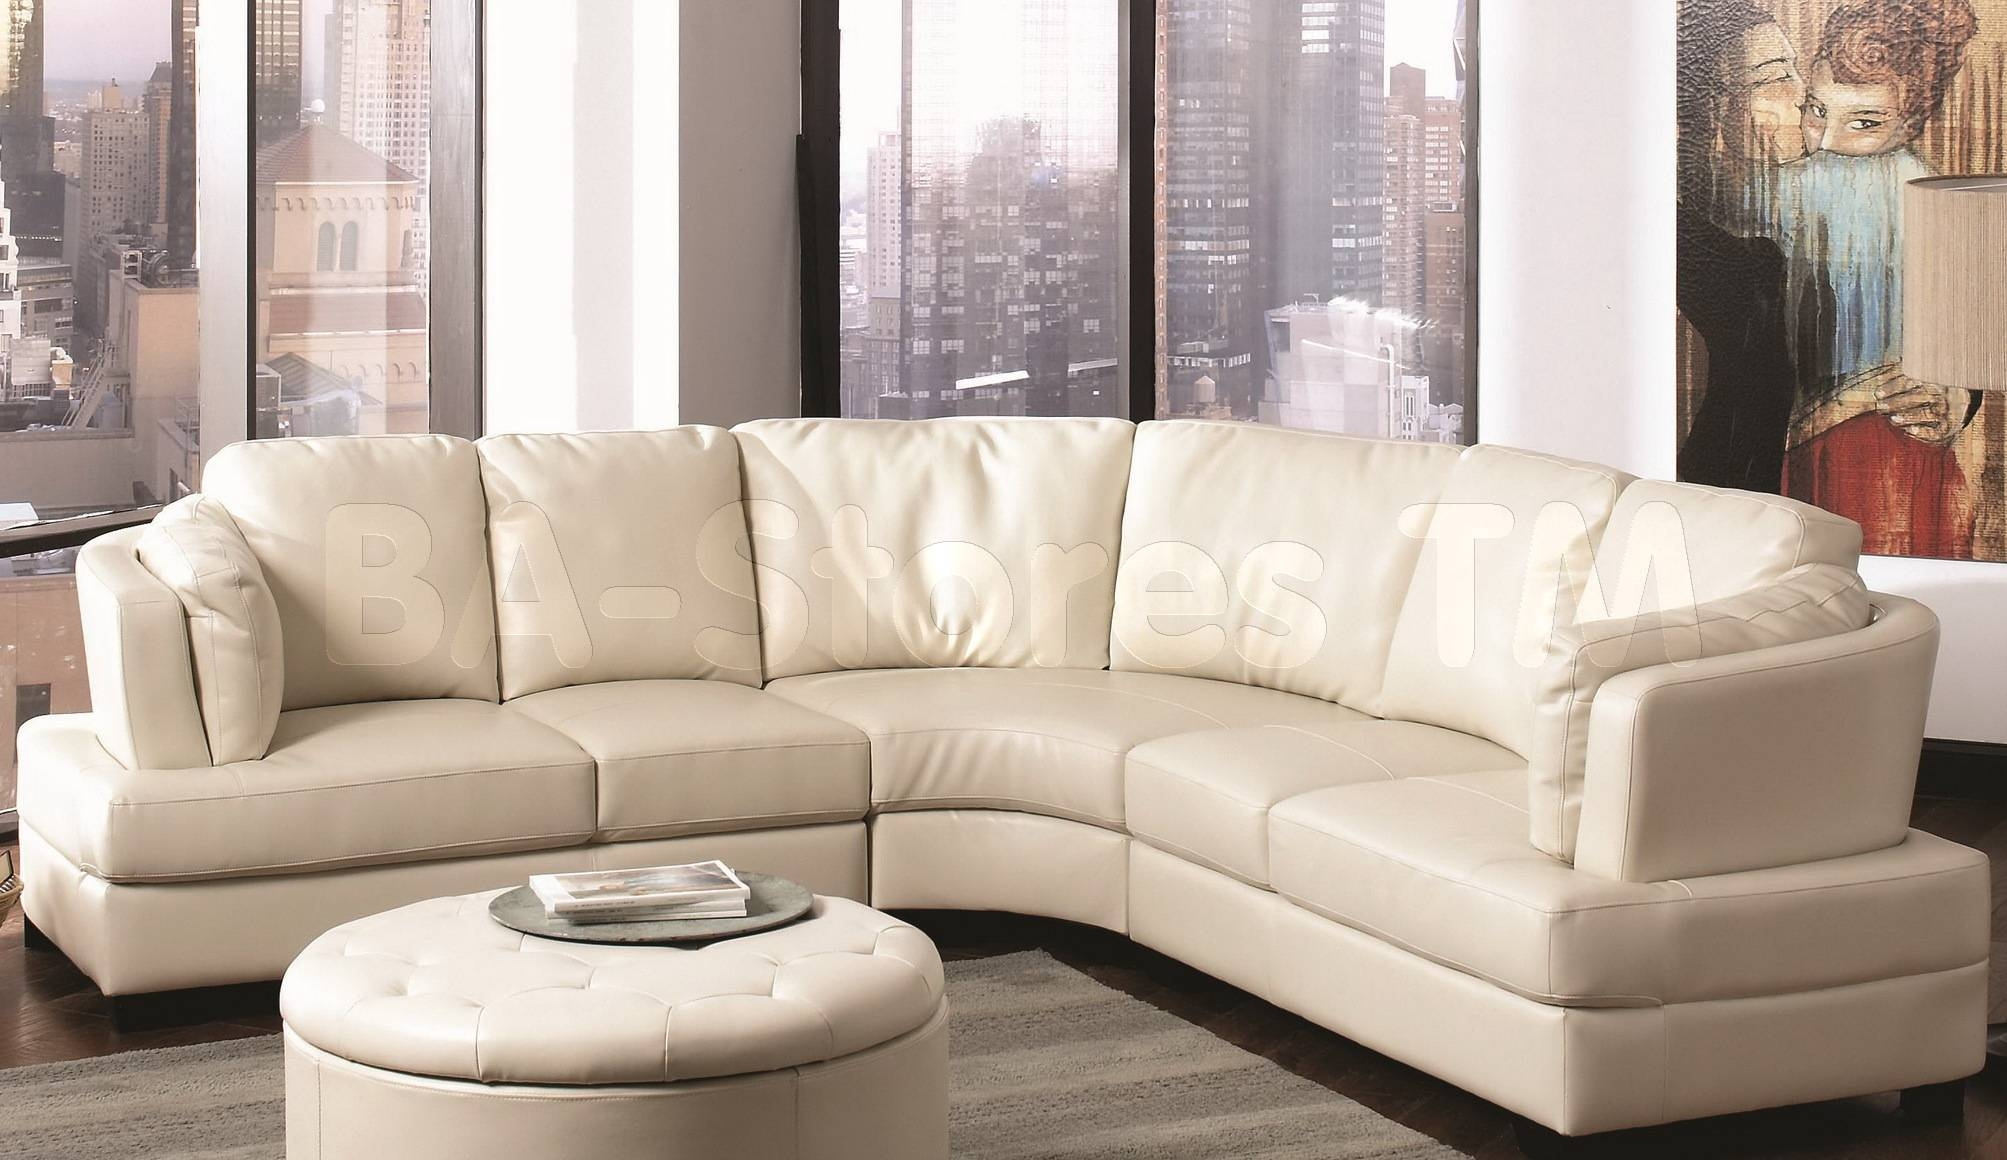 25 s Macys Leather Sectional Sofa